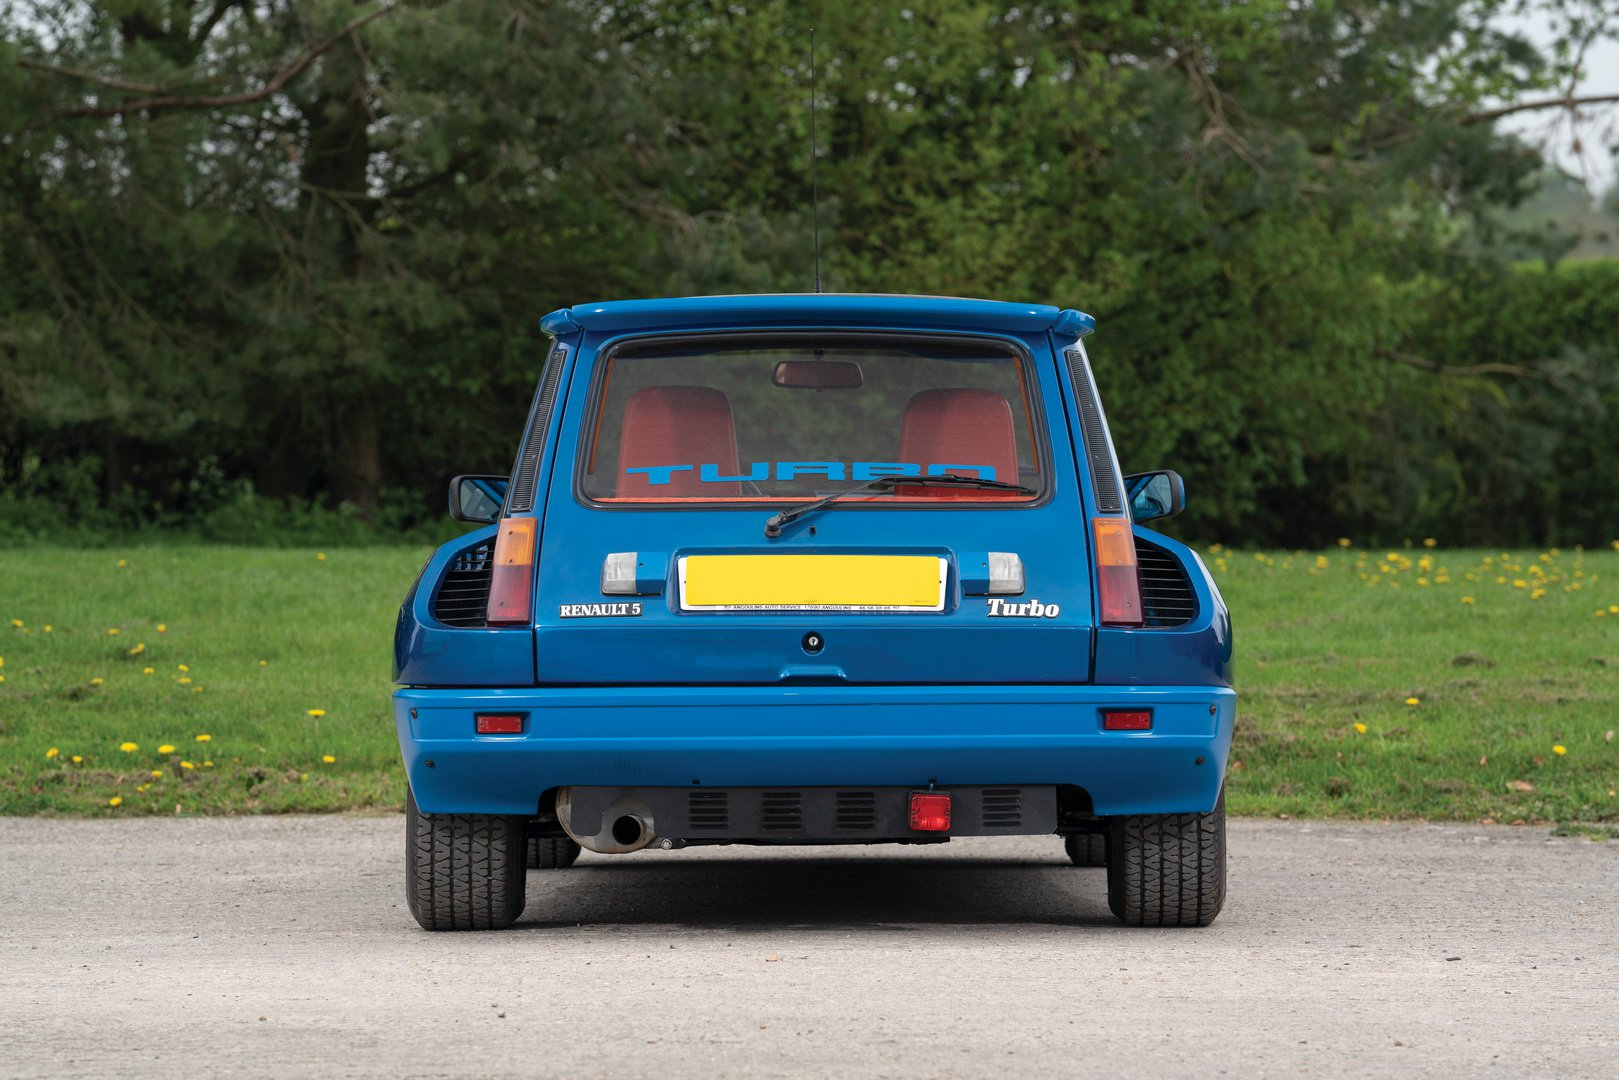 Renault-5-Turbo-for-sale-5